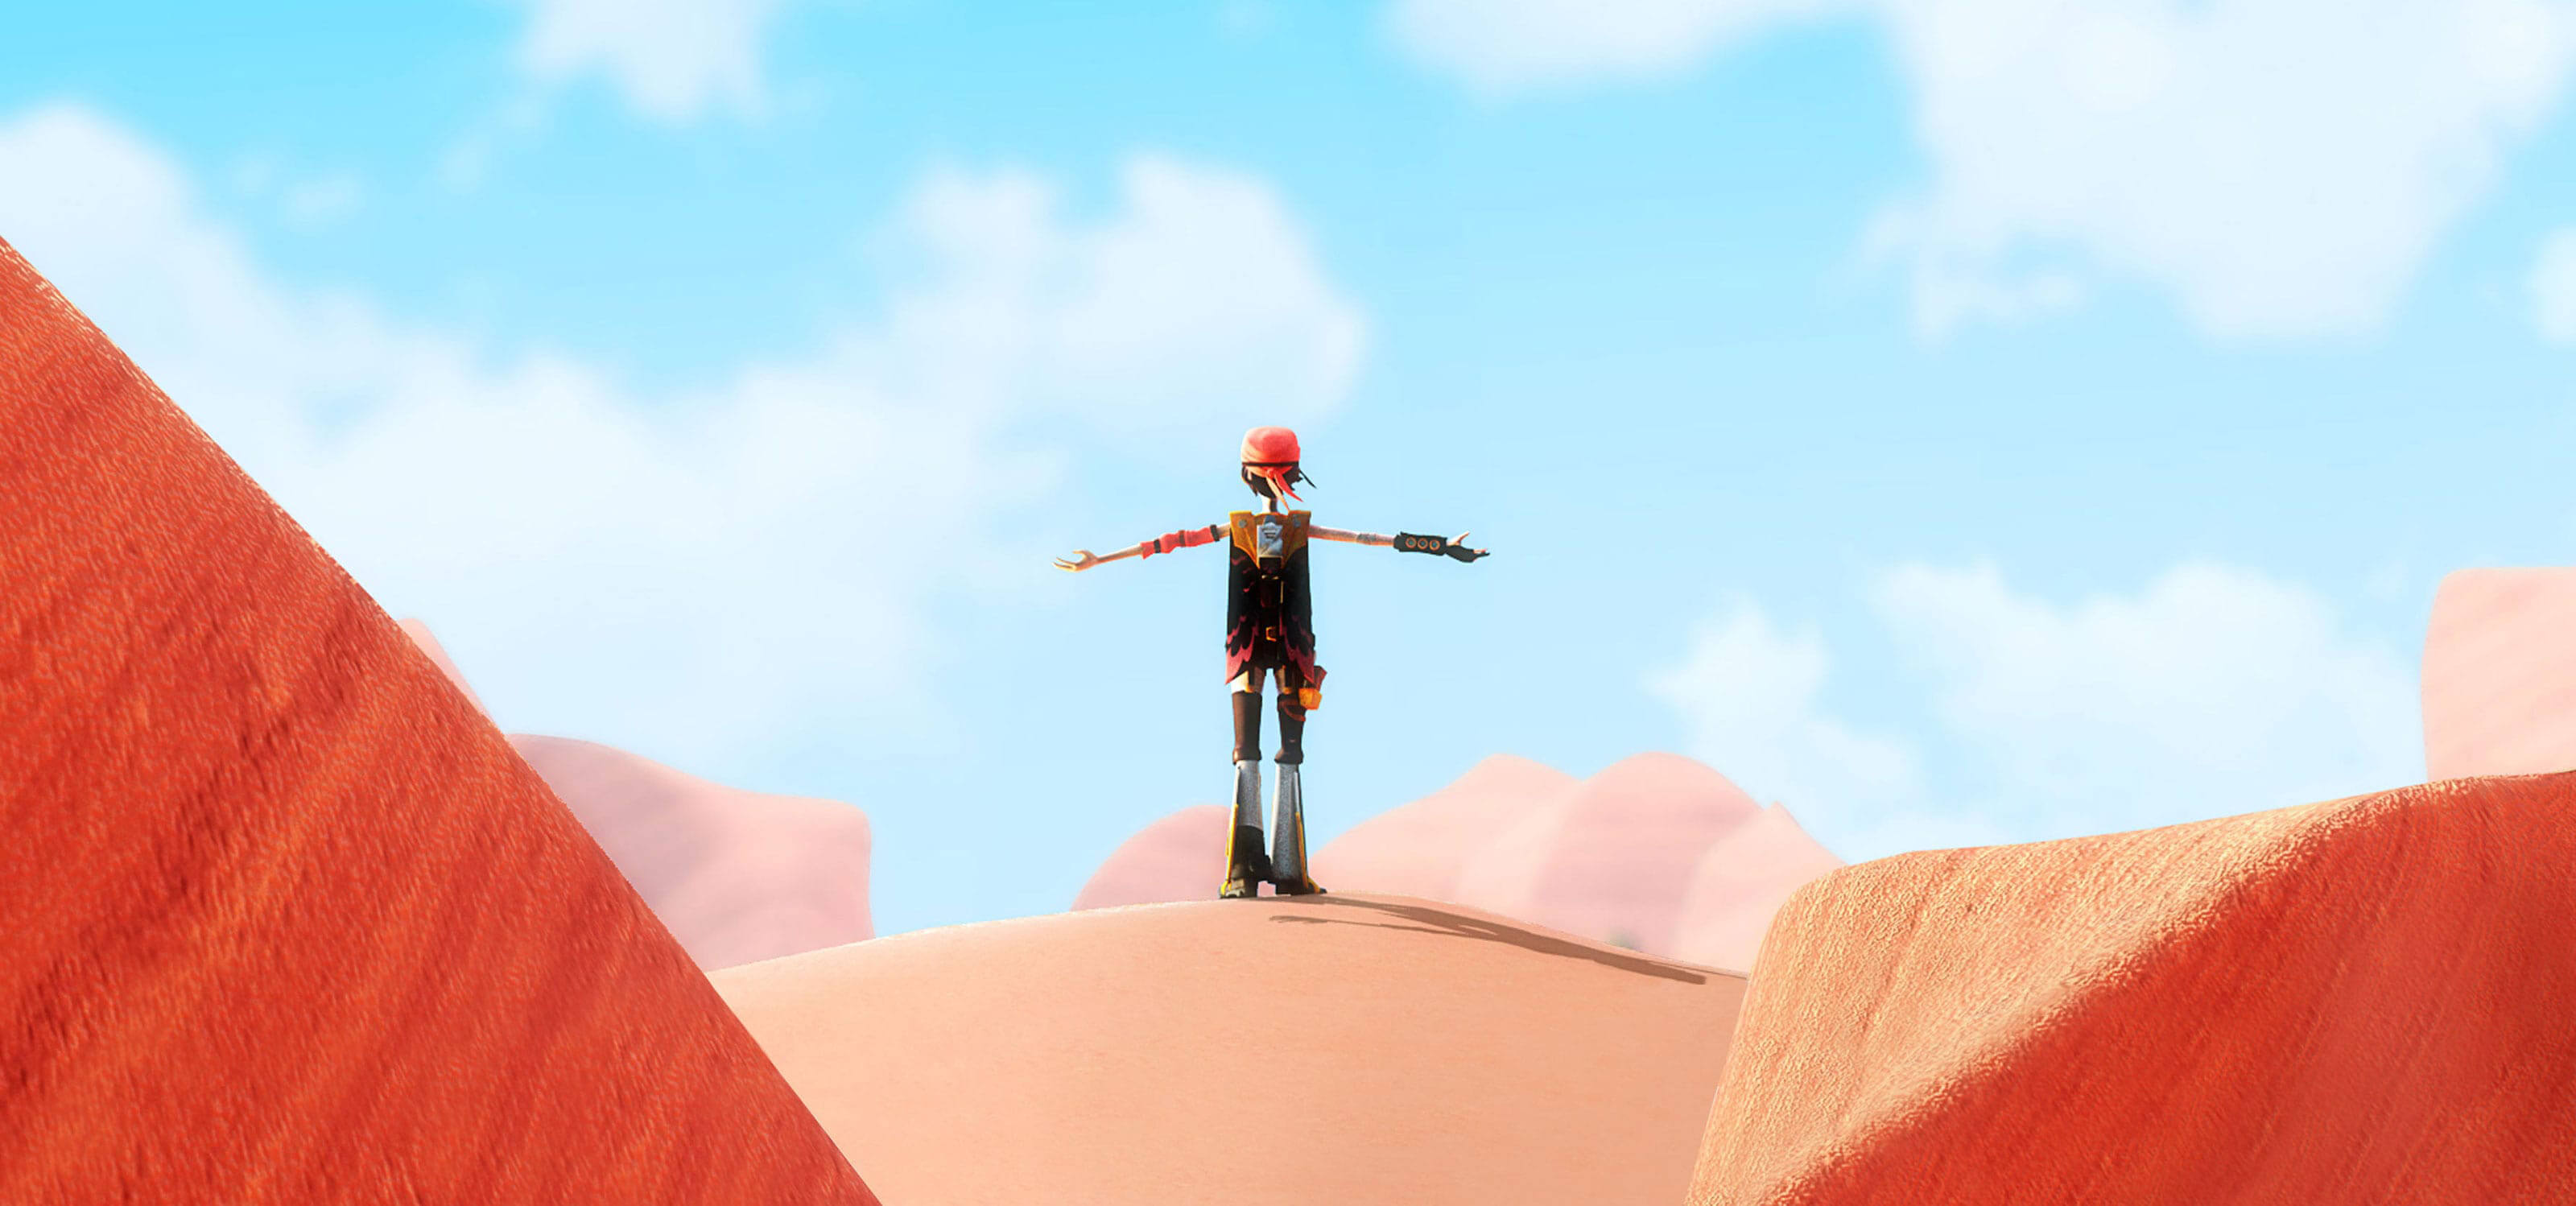 A character wearing bell-bottoms and a bandana stands atop a mound of sand, arms outstretched